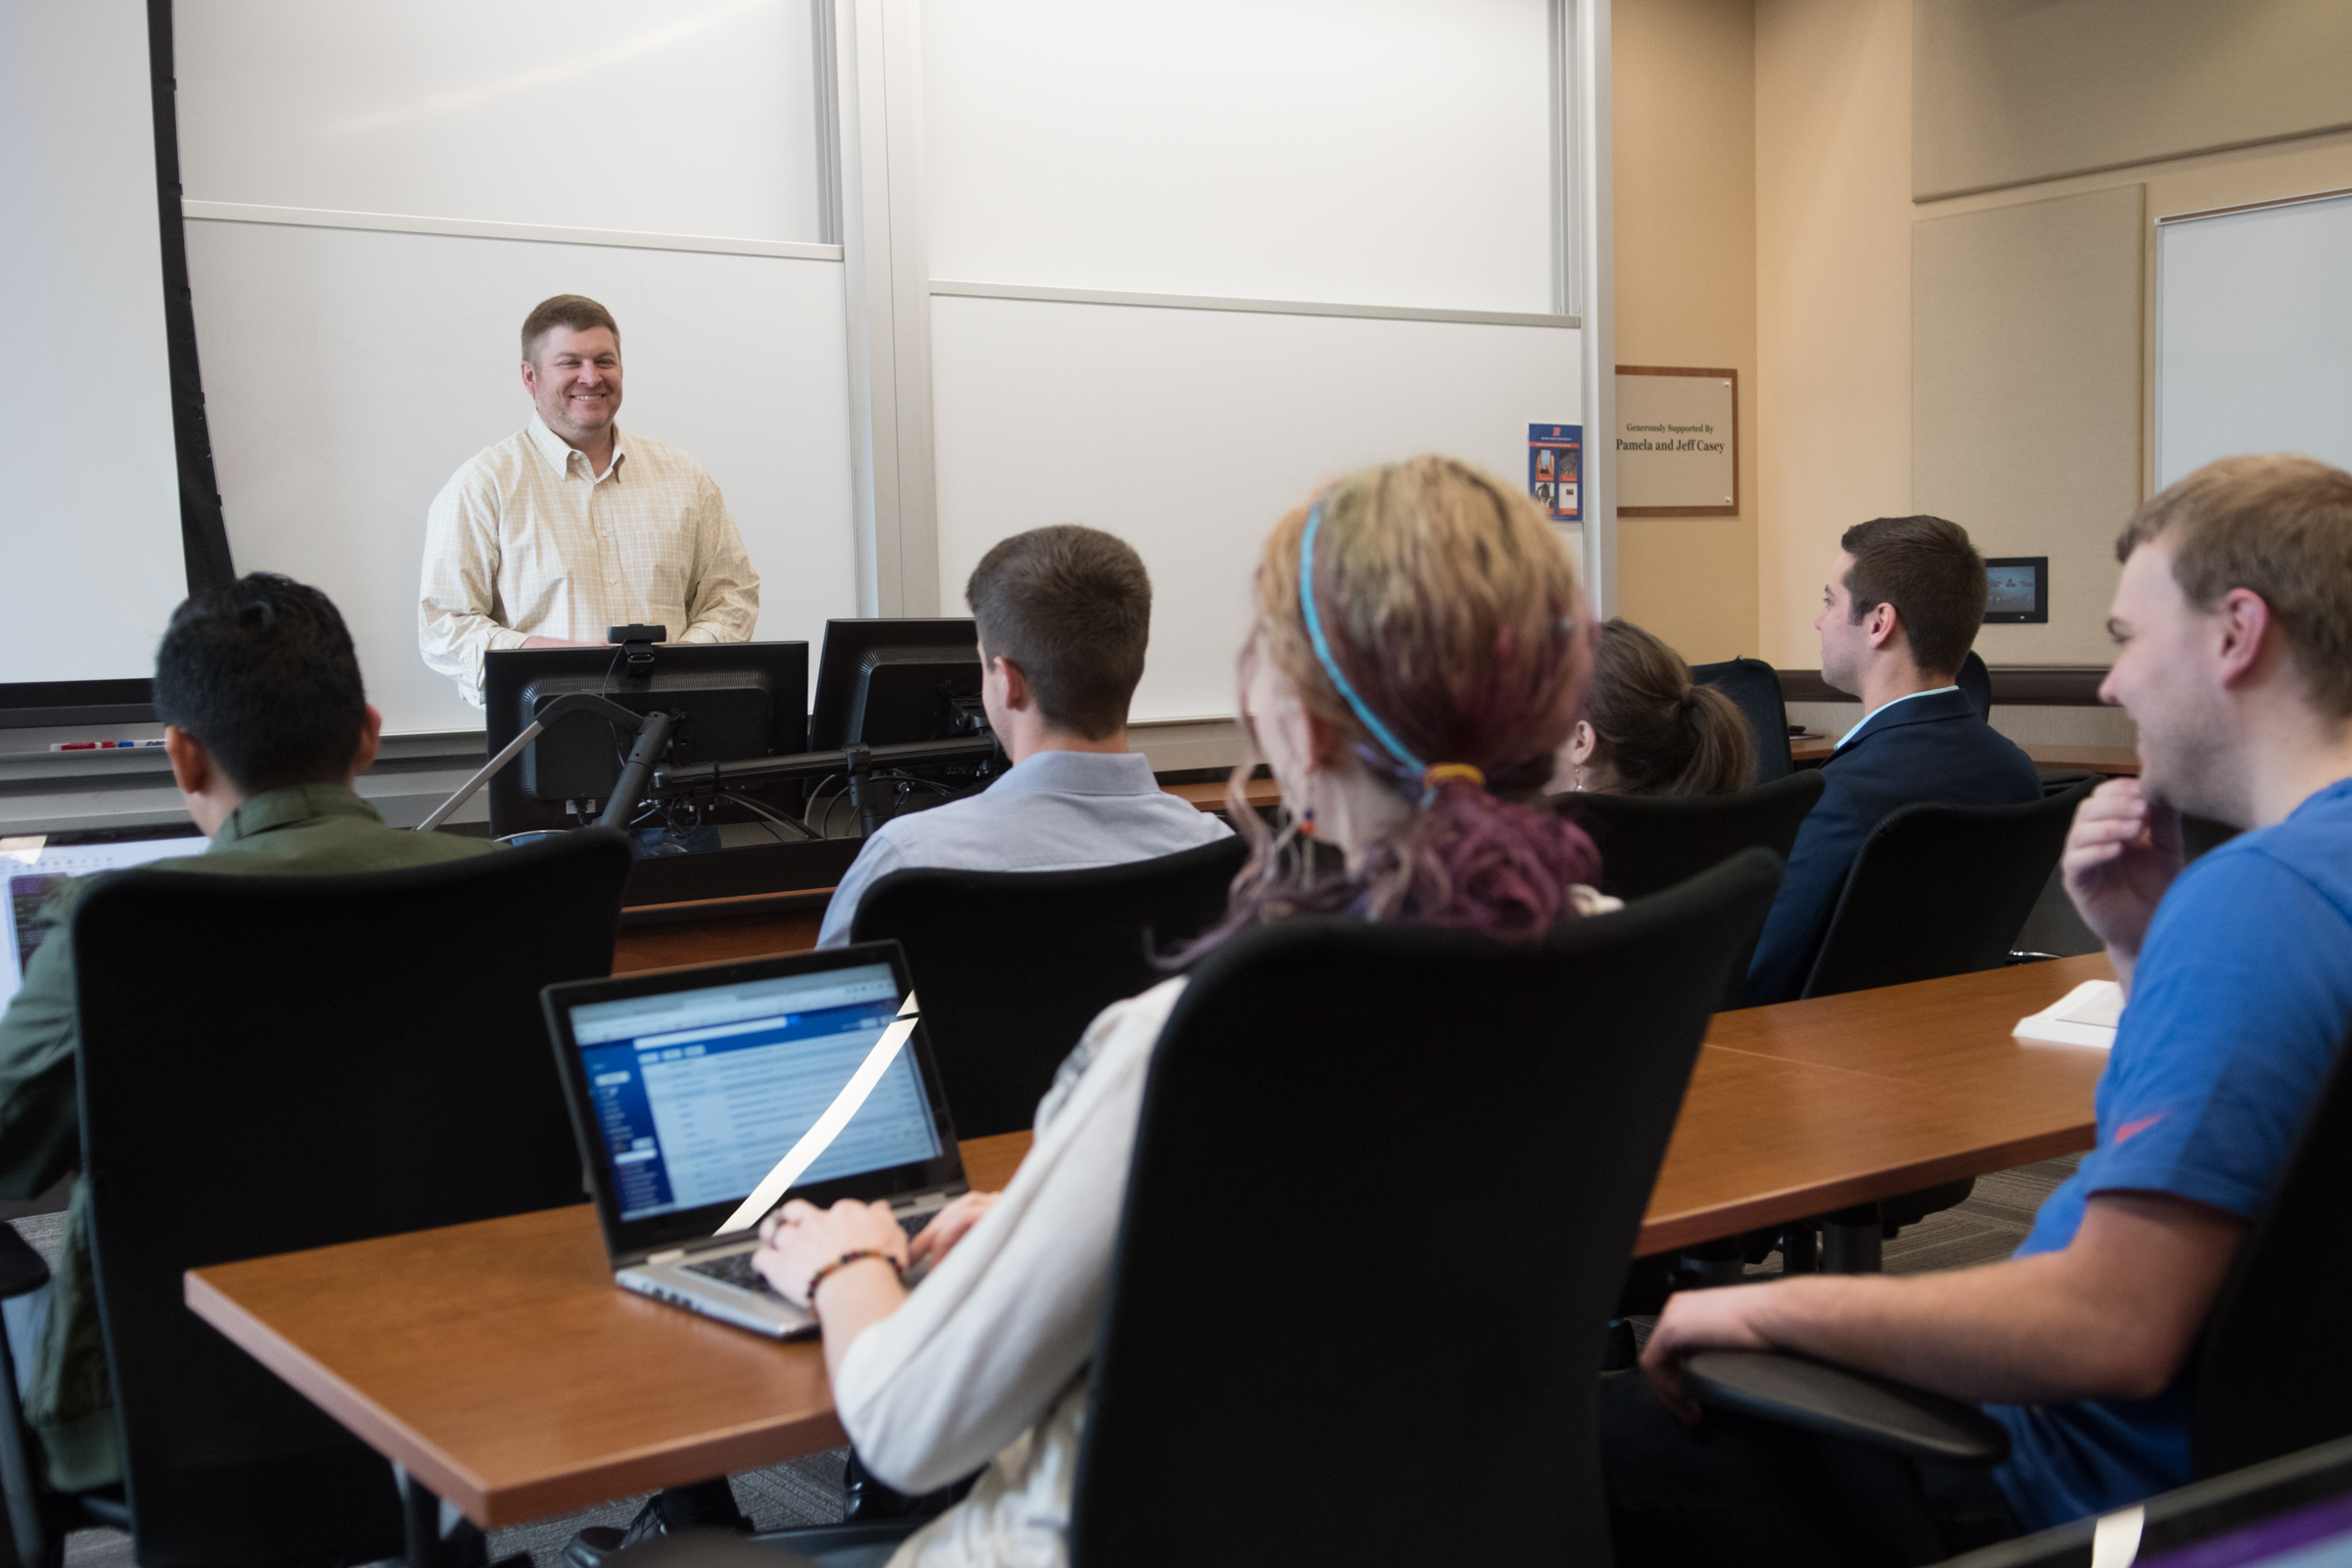 An instructor speaks in front of his students